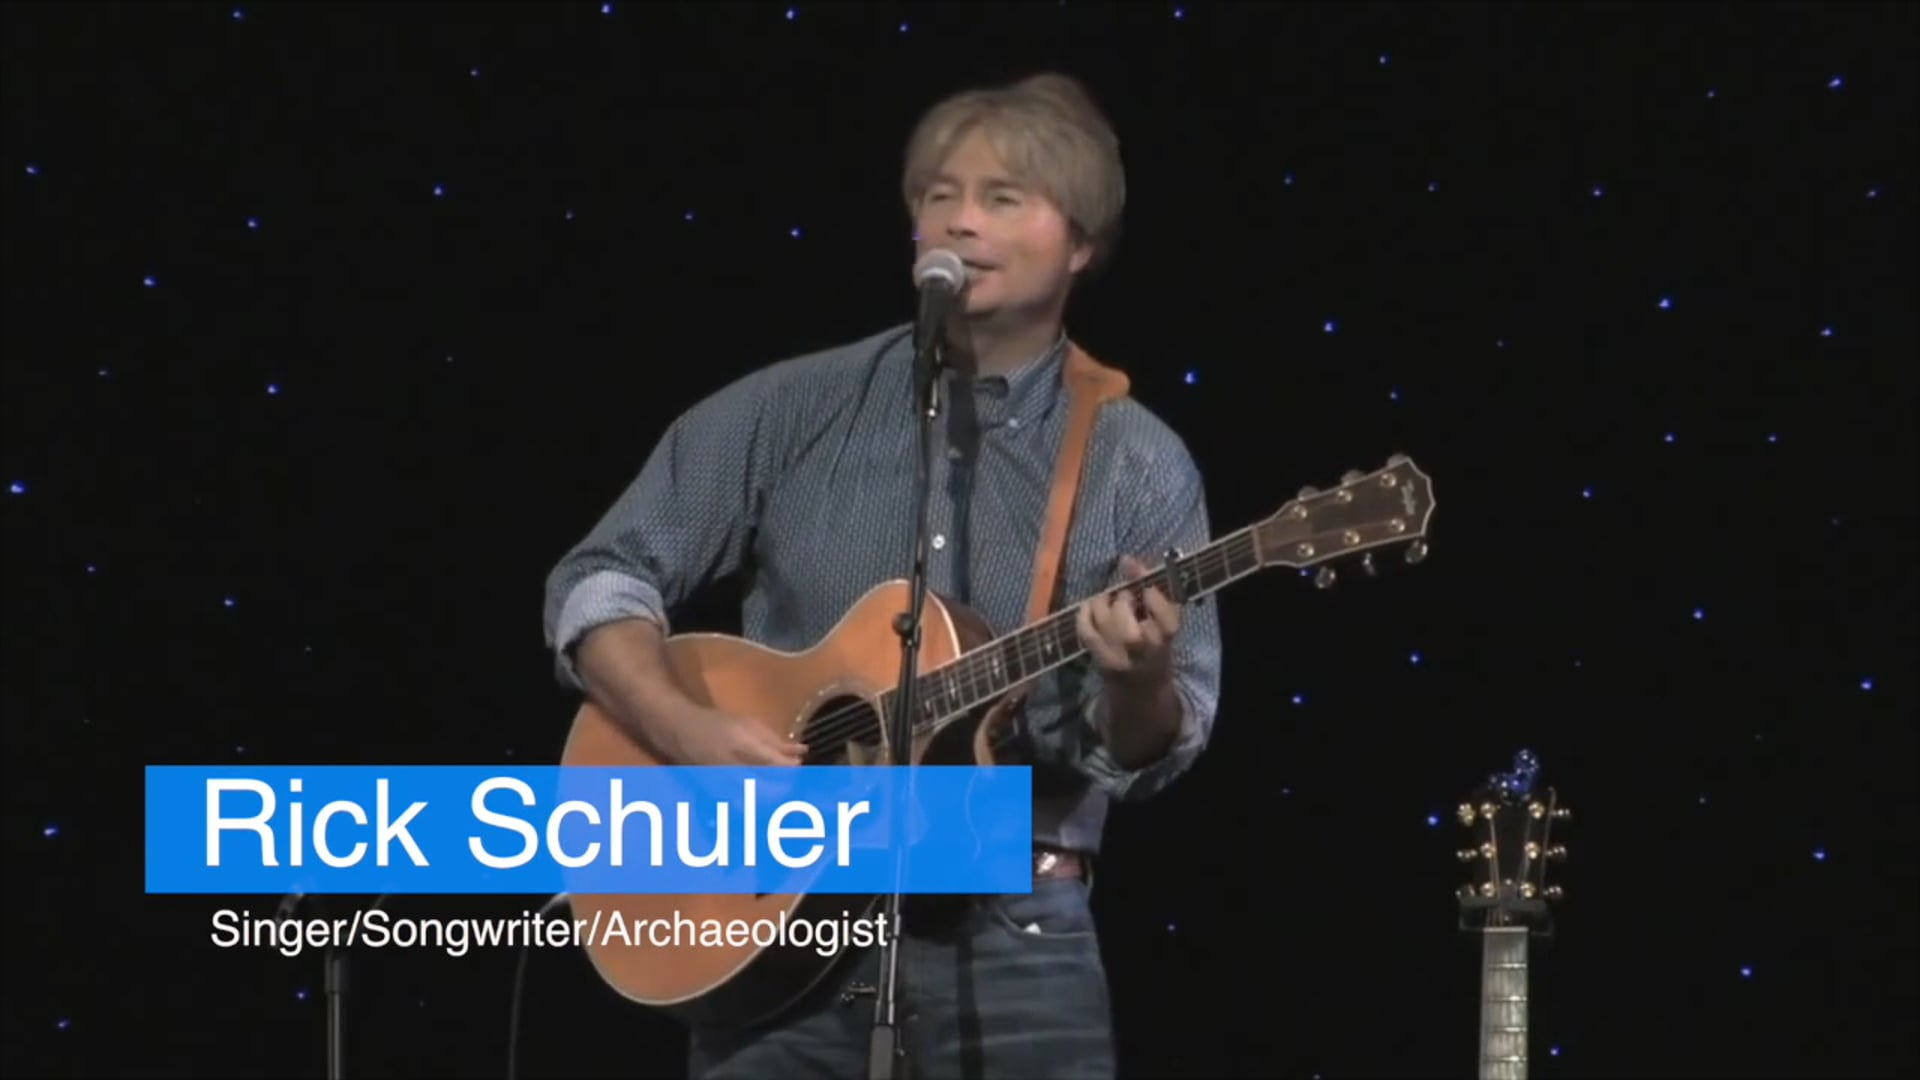 The Amazing Story of Rick Schuler